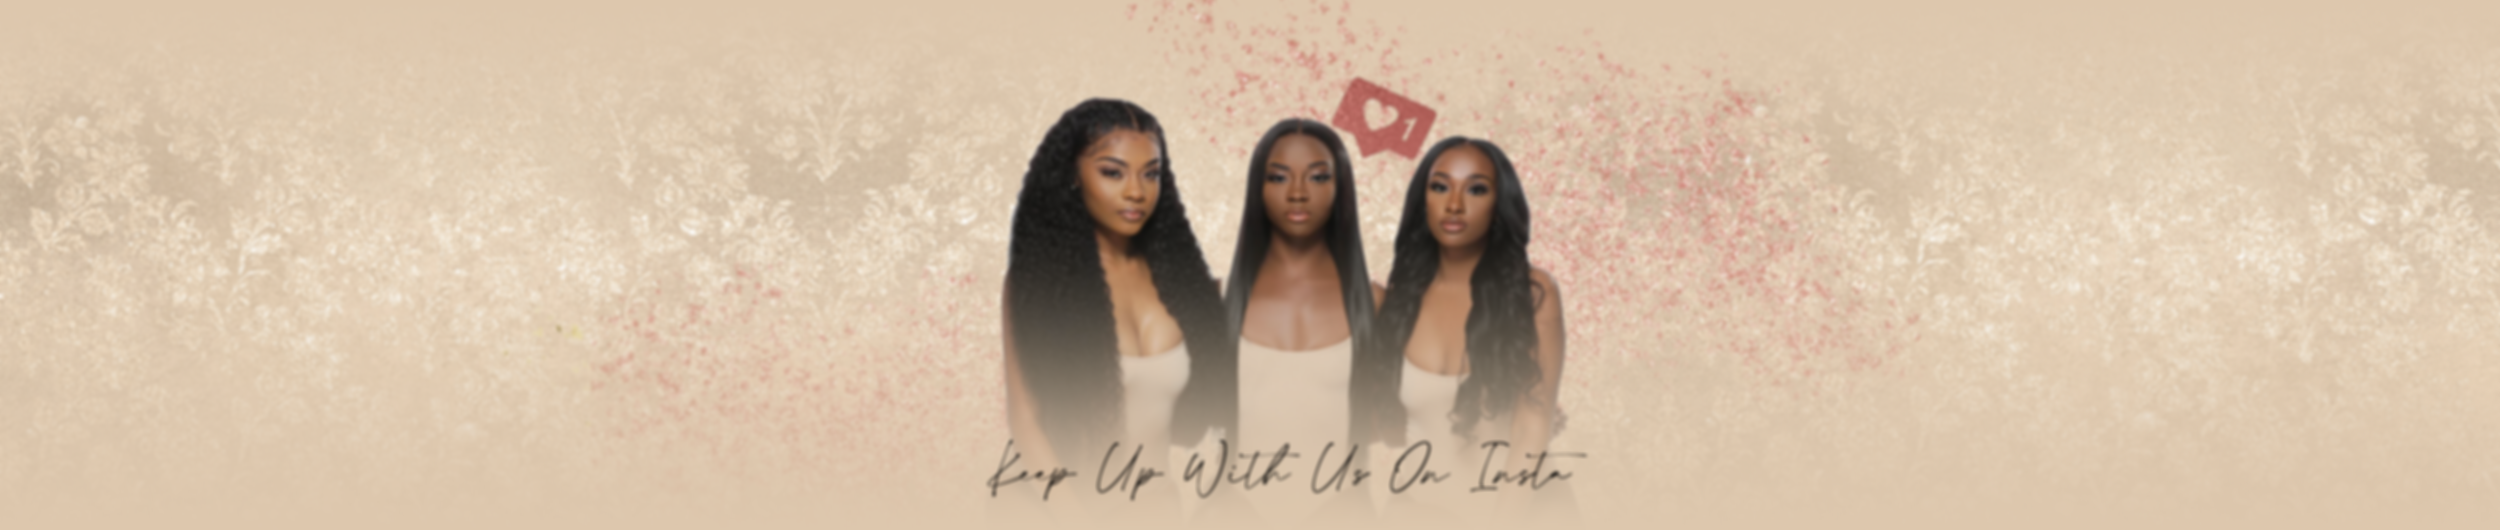 labelleluxe-banner3.png